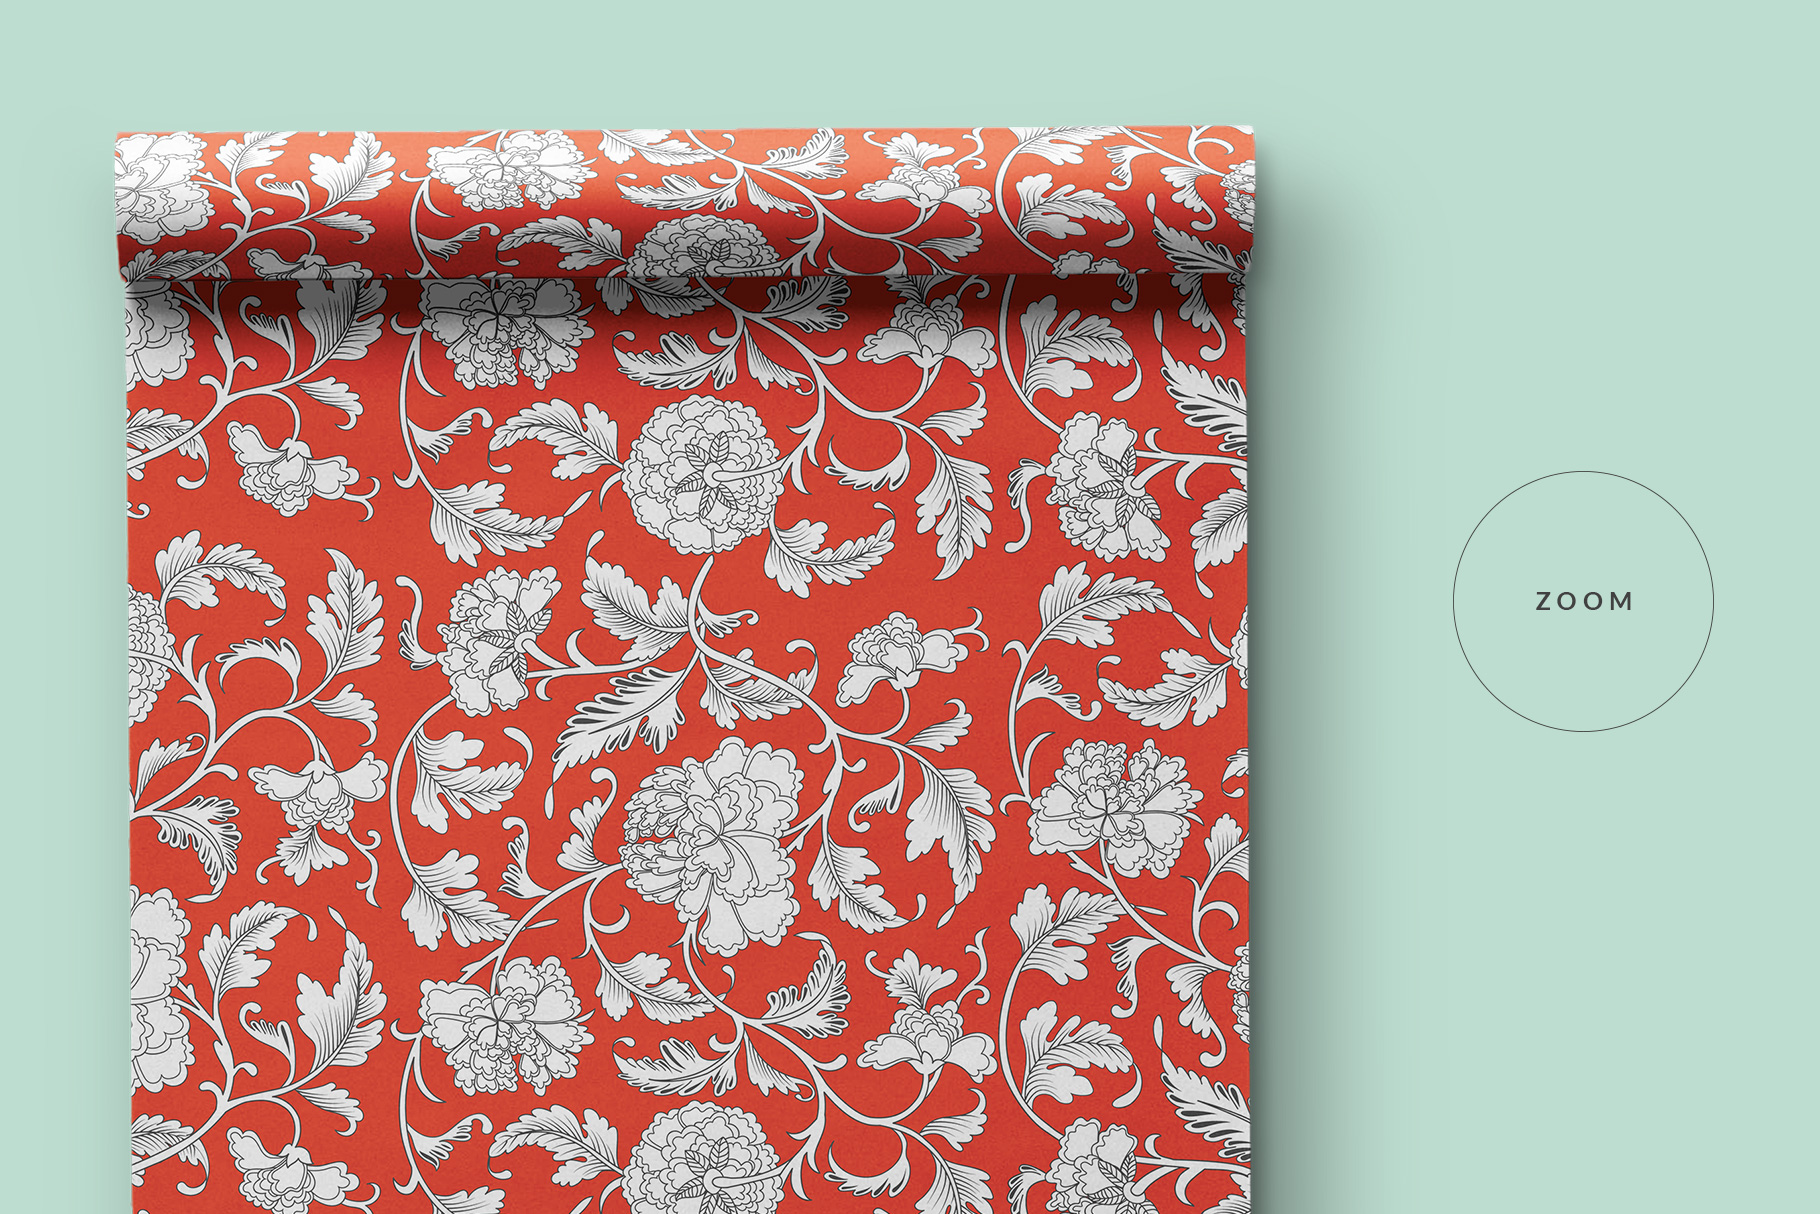 zoomed in image of the top view wrapping paper roll mockup